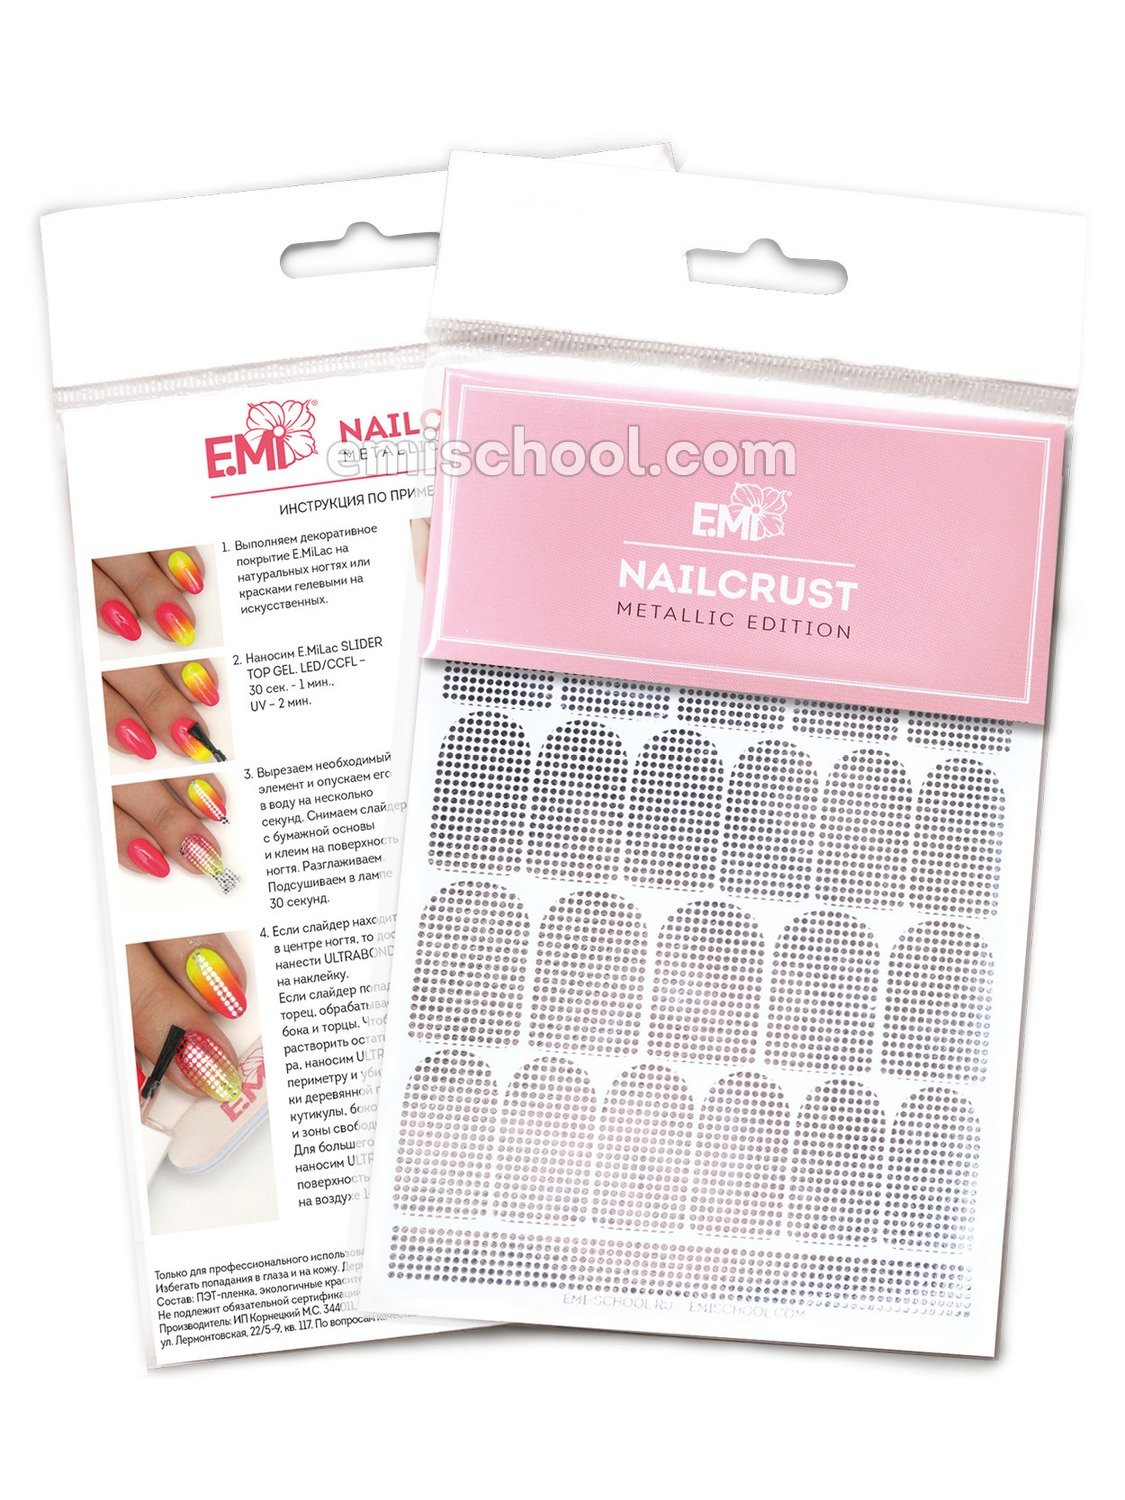 NAILCRUST Pattern Sliders #40 Silver